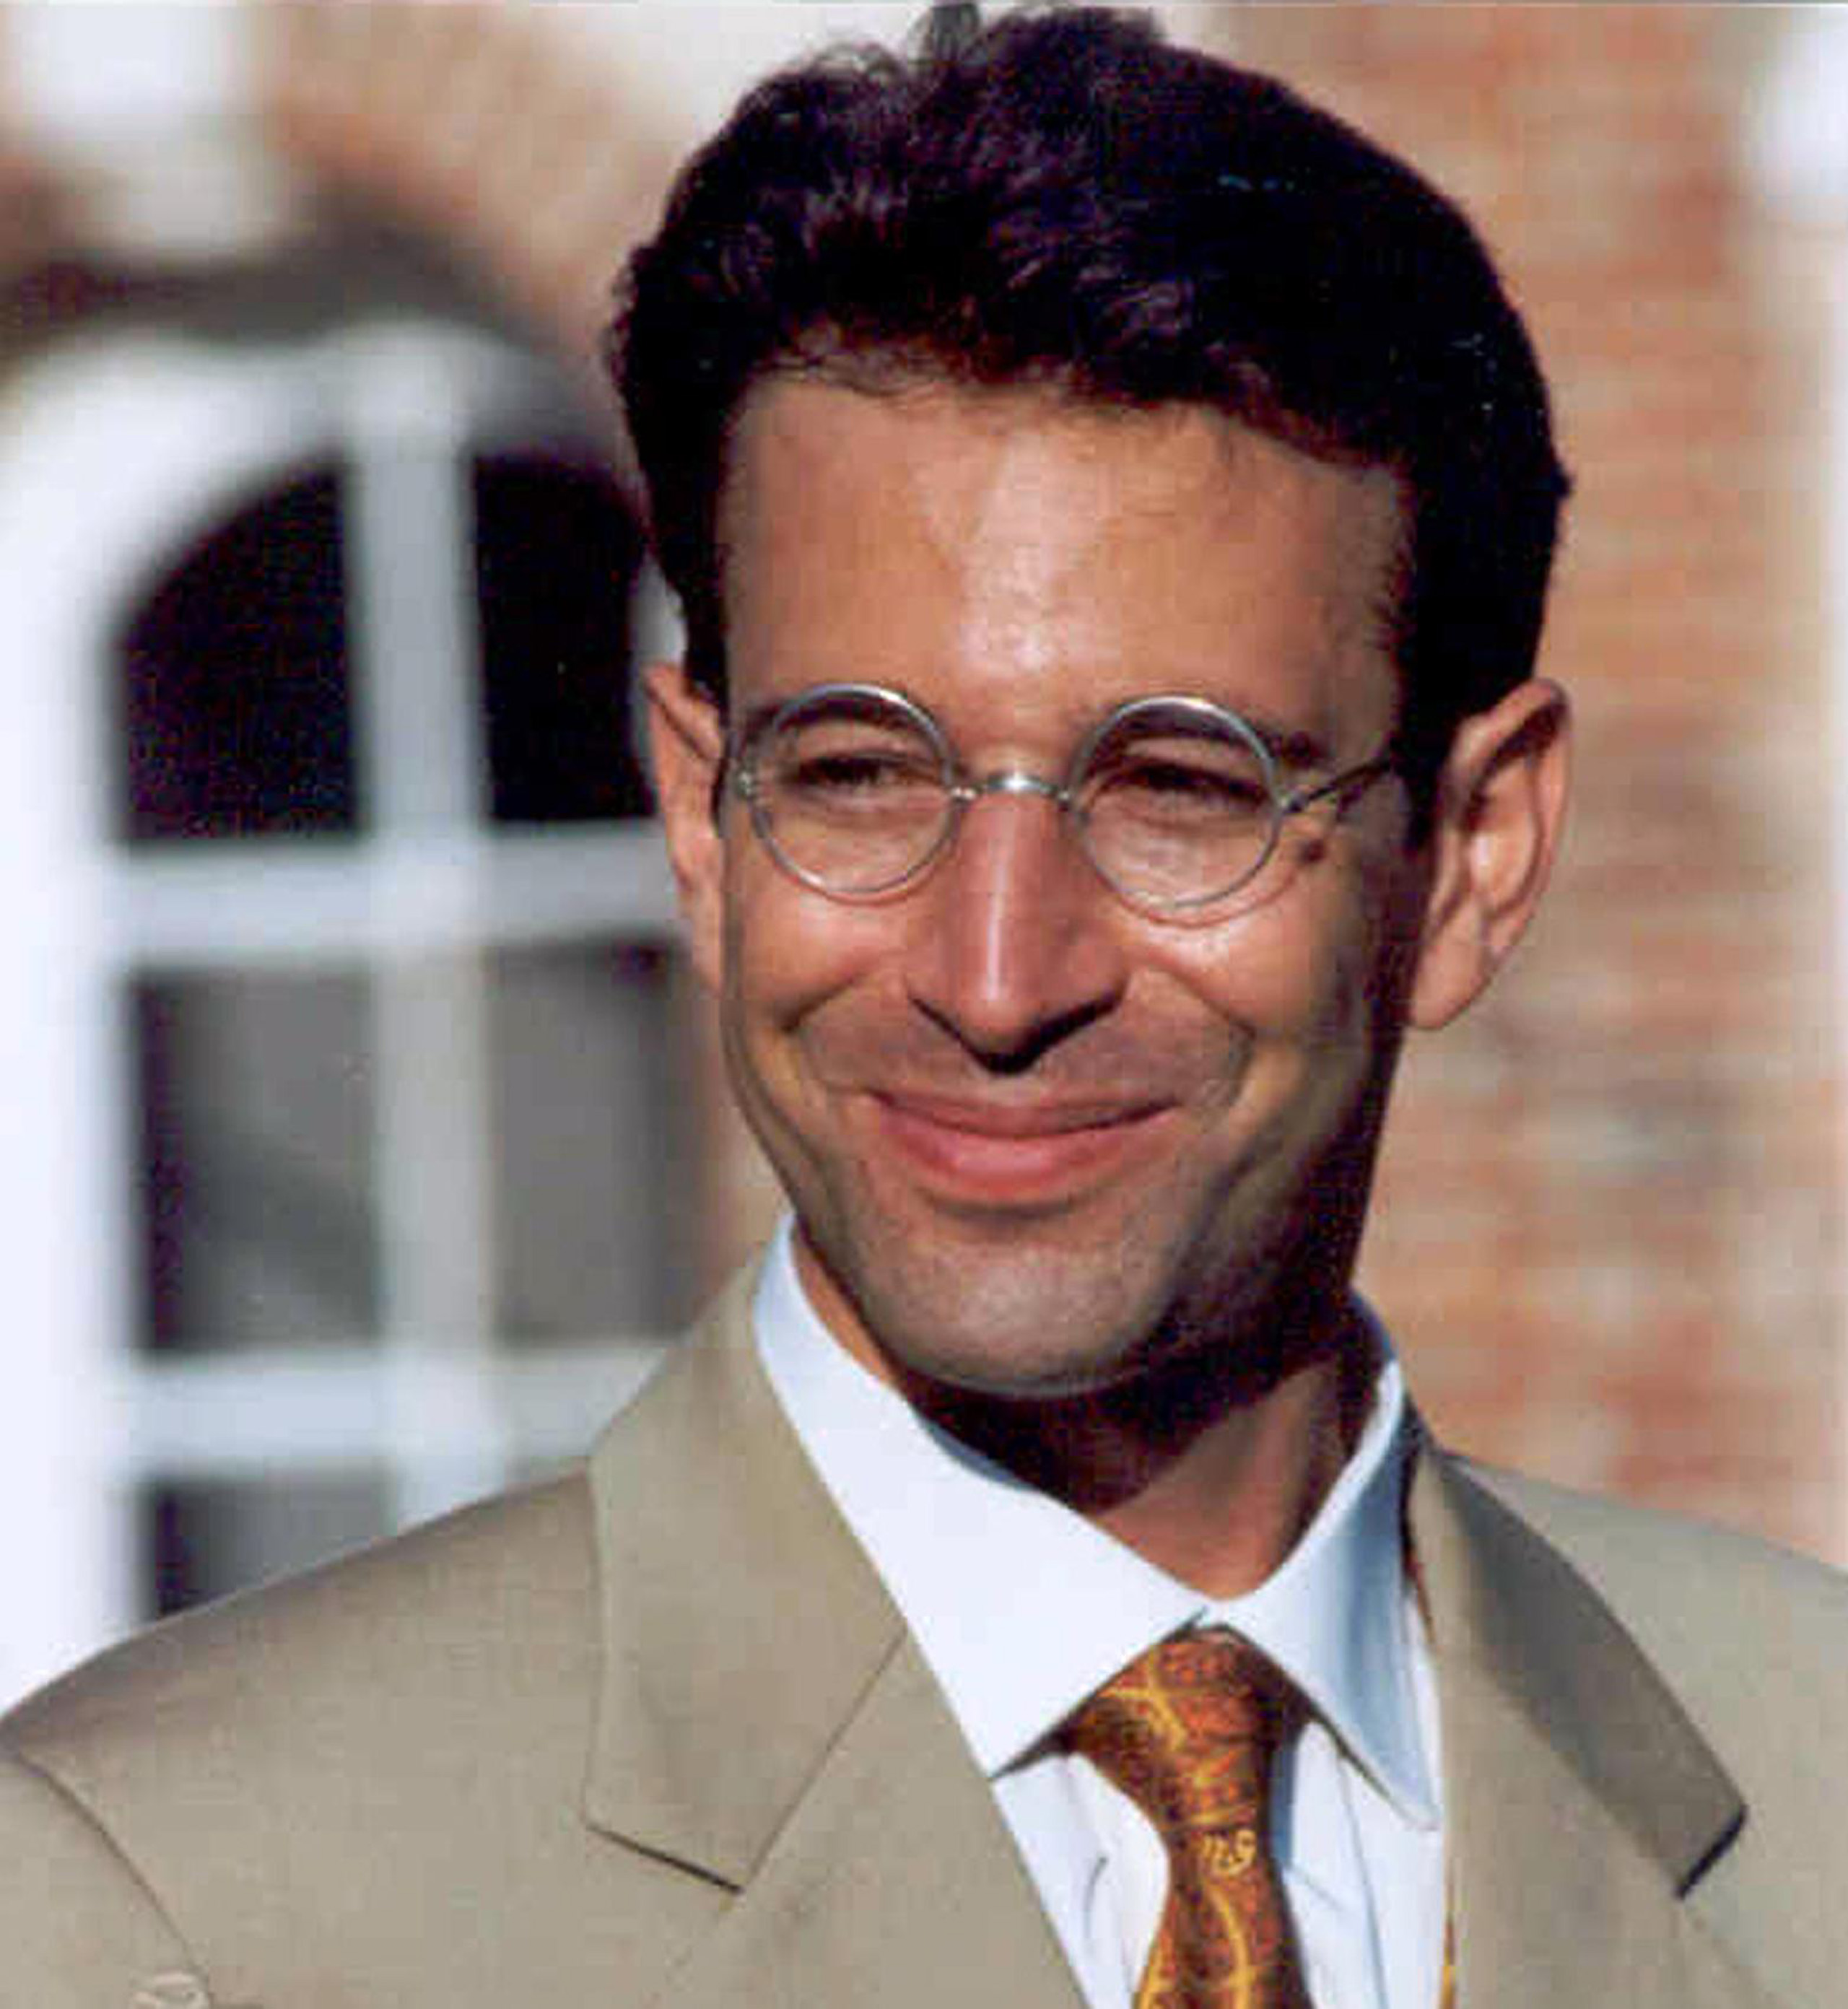 Wall Street Journal reporter Daniel Pearl disappeared in the Pakistani port city of Karachi on Jan 23, 2002 after telling his wife he was going to interview an Islamic group leader.